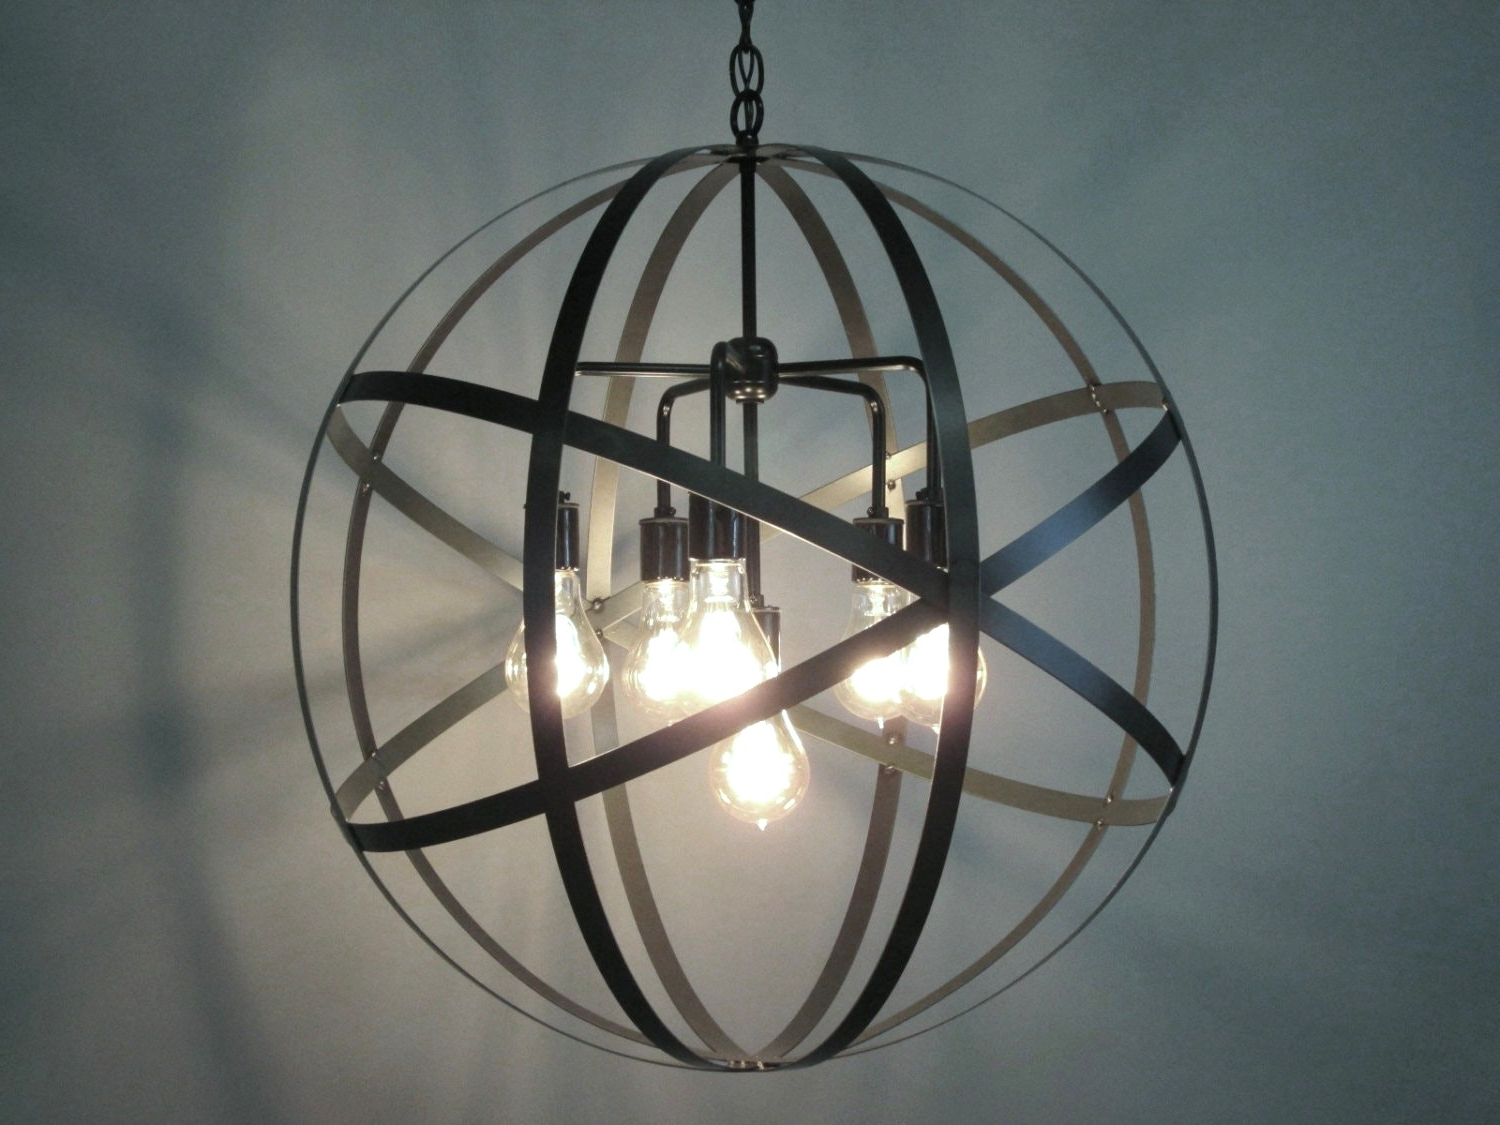 Industrial Orb Chandelier Ceiling Light Sphere 24 With Clear Glass Intended For Favorite Orb Chandeliers (Gallery 5 of 20)